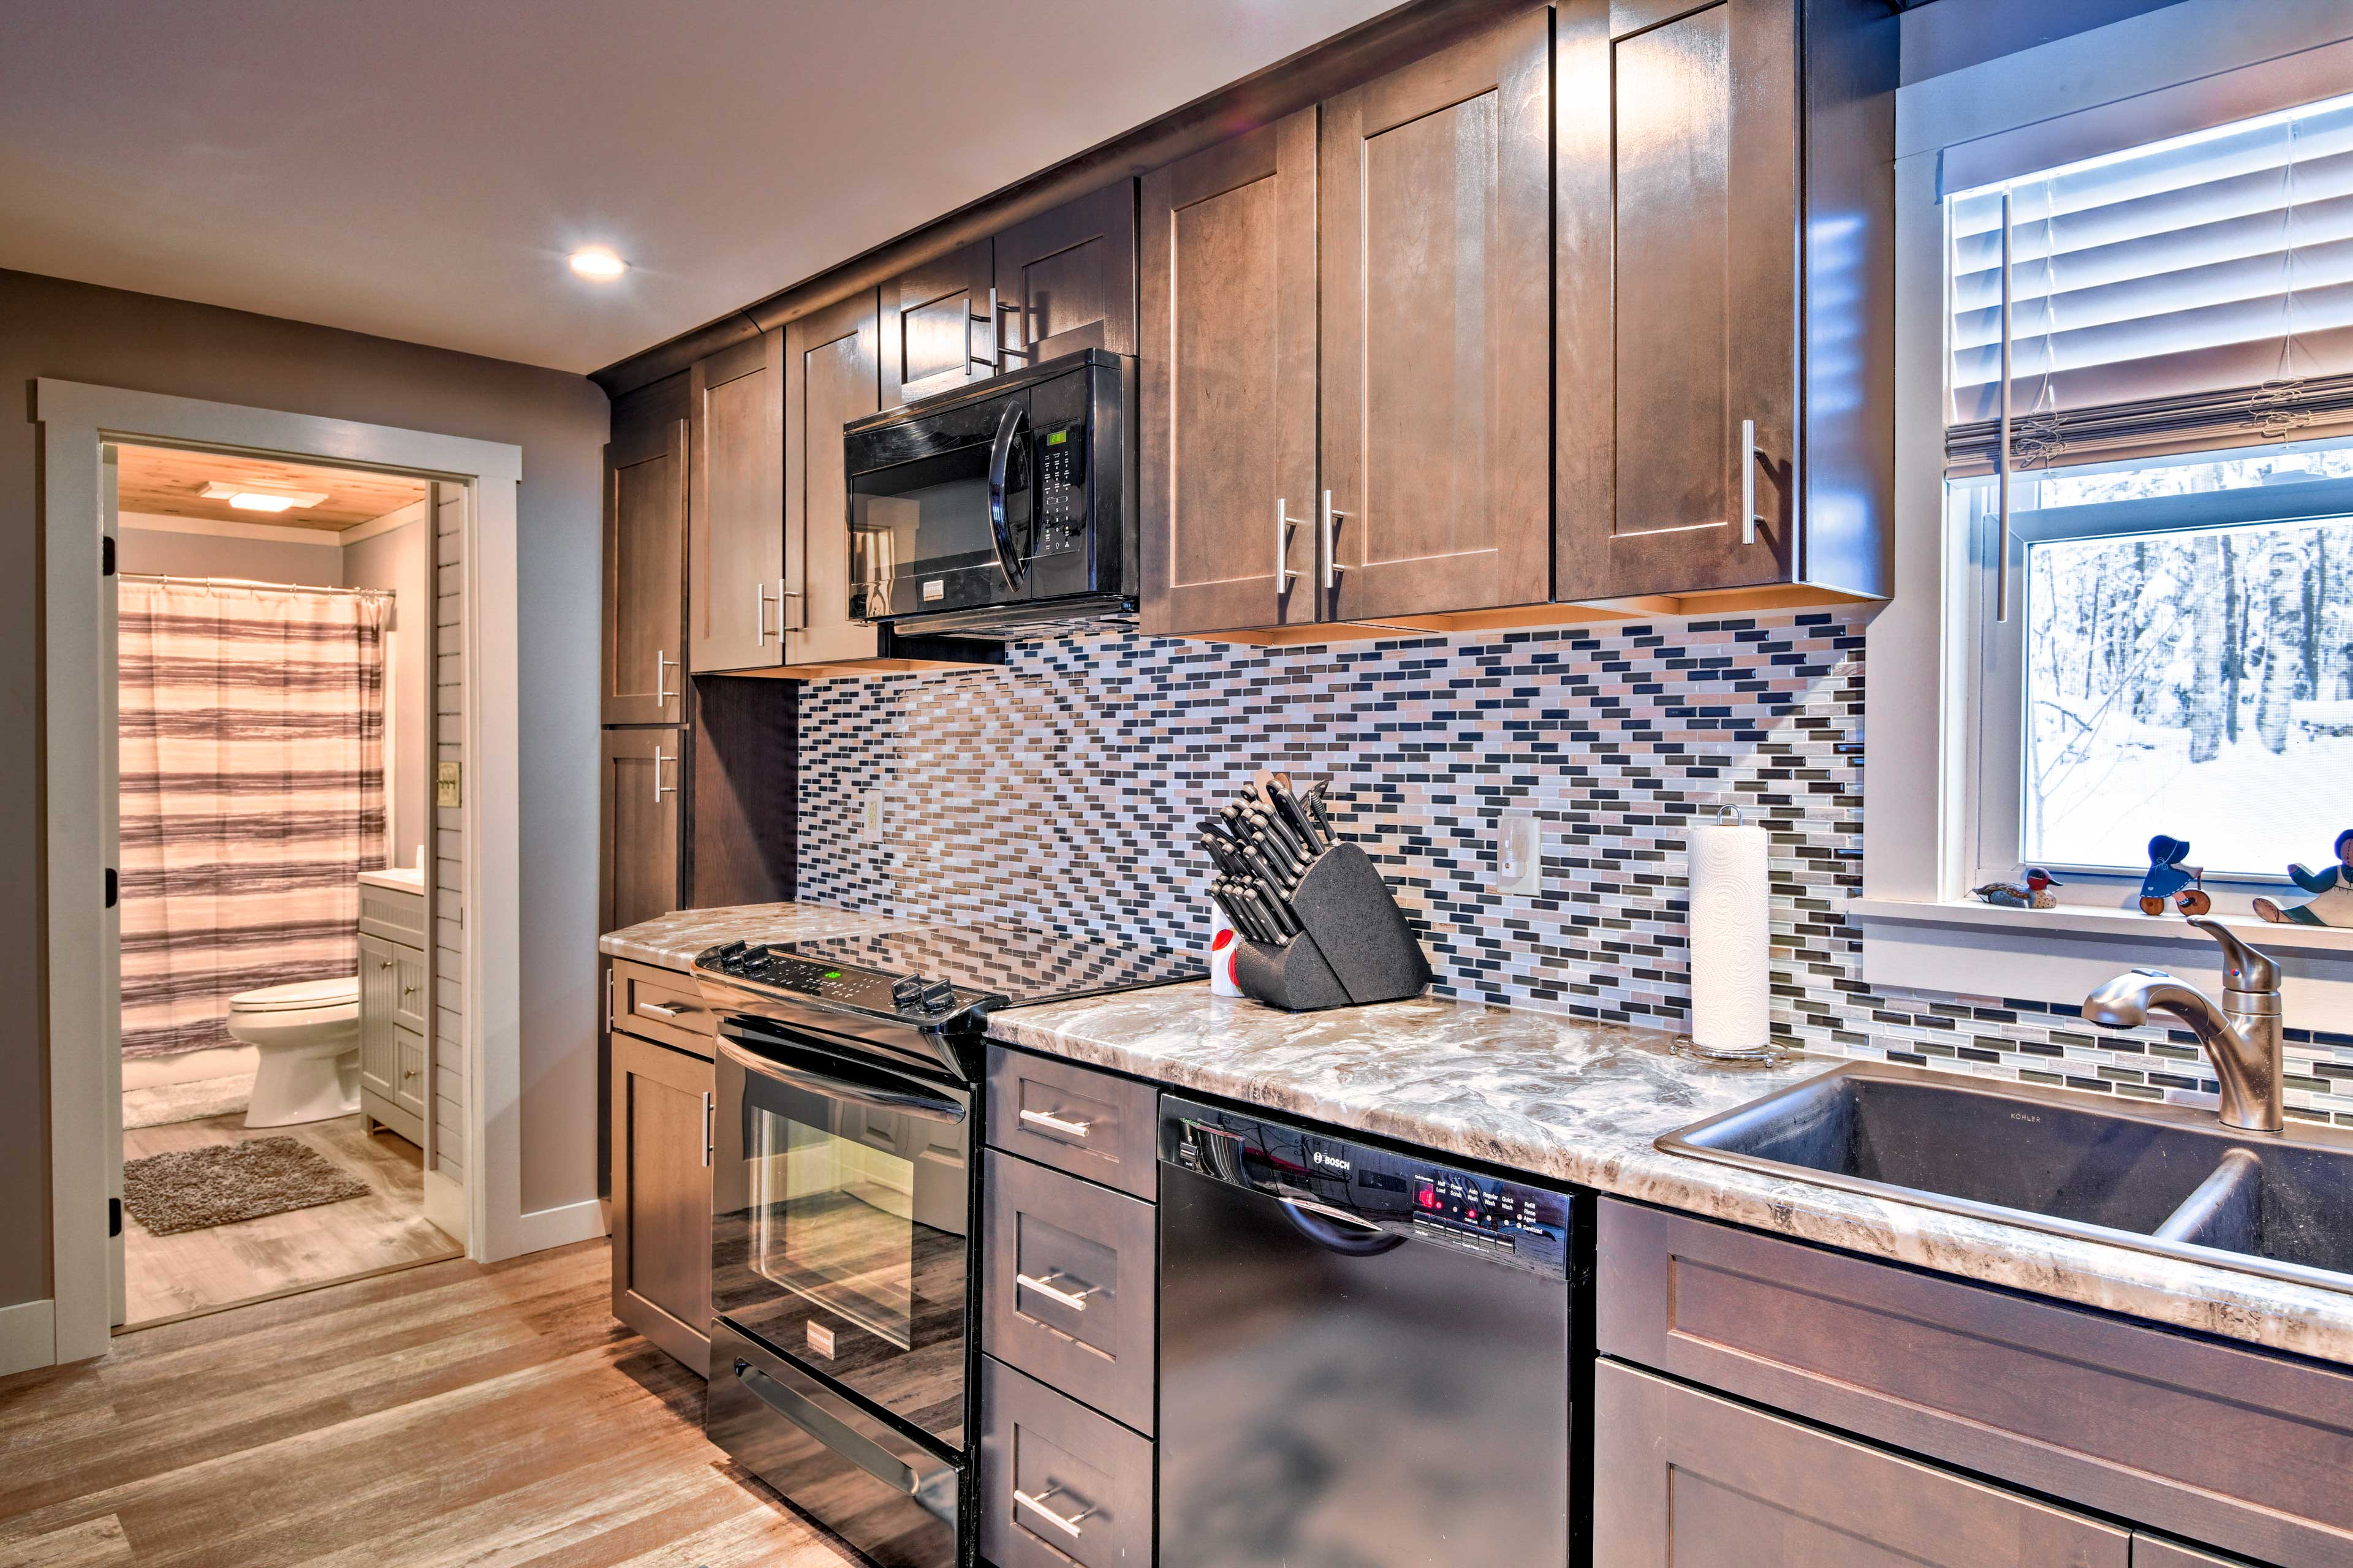 Whip up your favorite meals in the fully equipped kitchen!